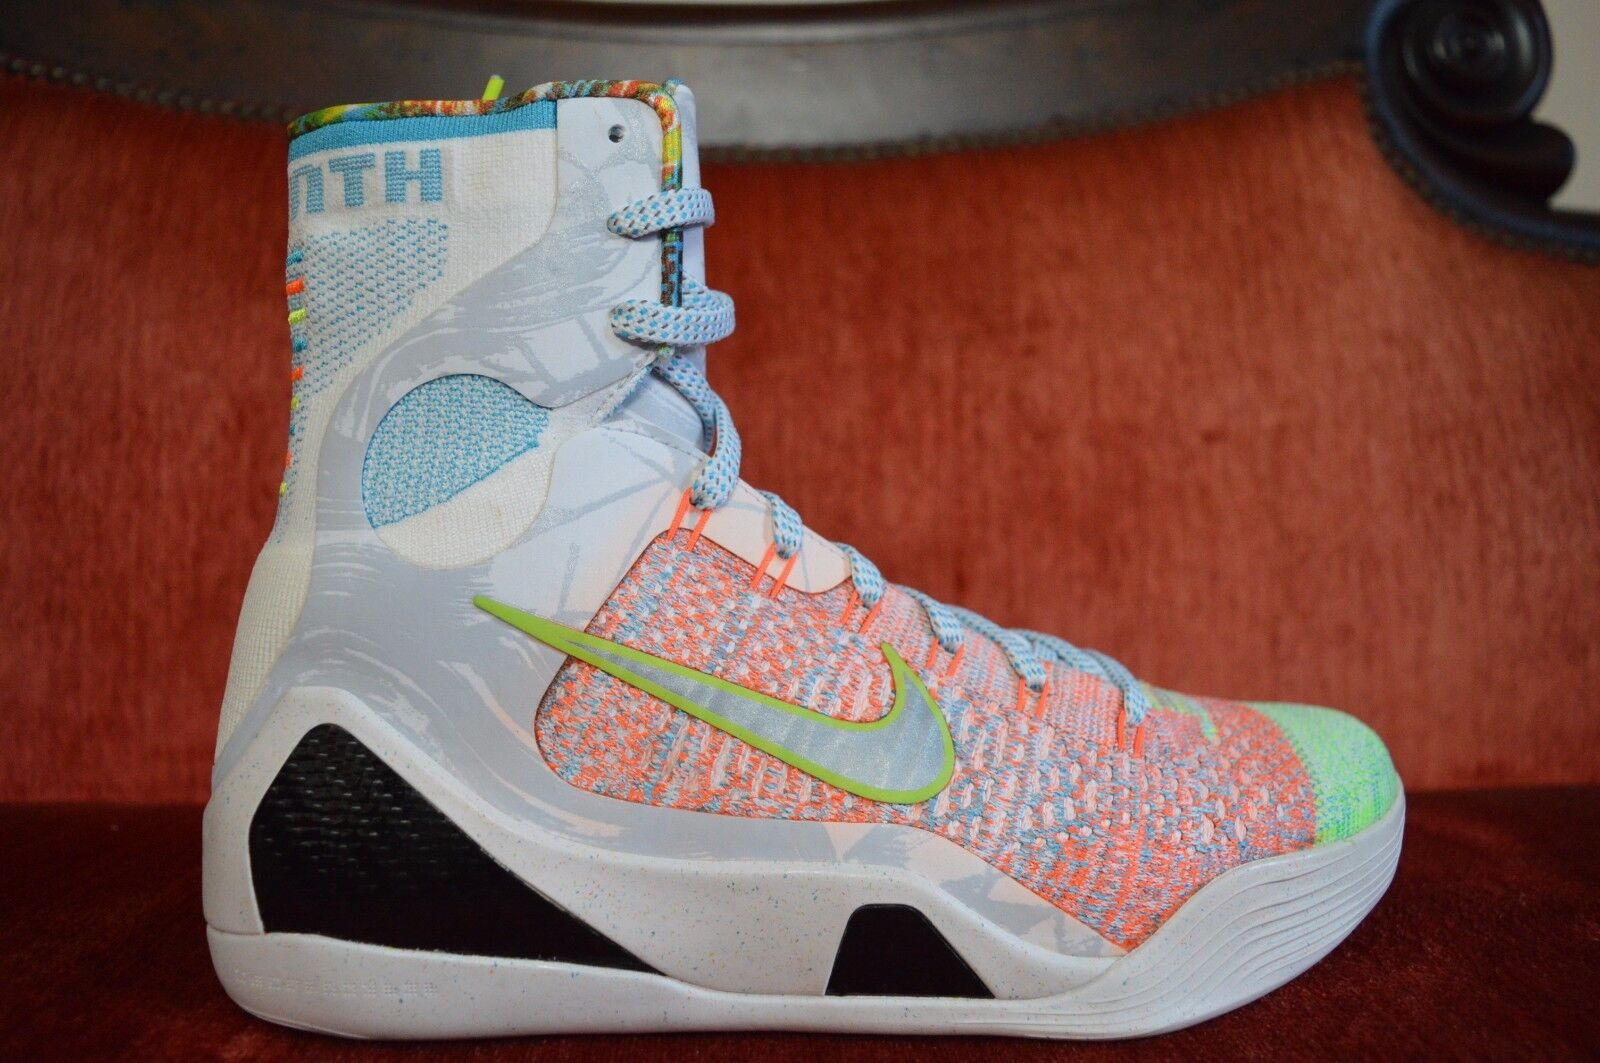 Nike Kobe IX 9 Elite Premium 'WHAT THE' 678301-904 Flyknit Chlorine bluee Jordan